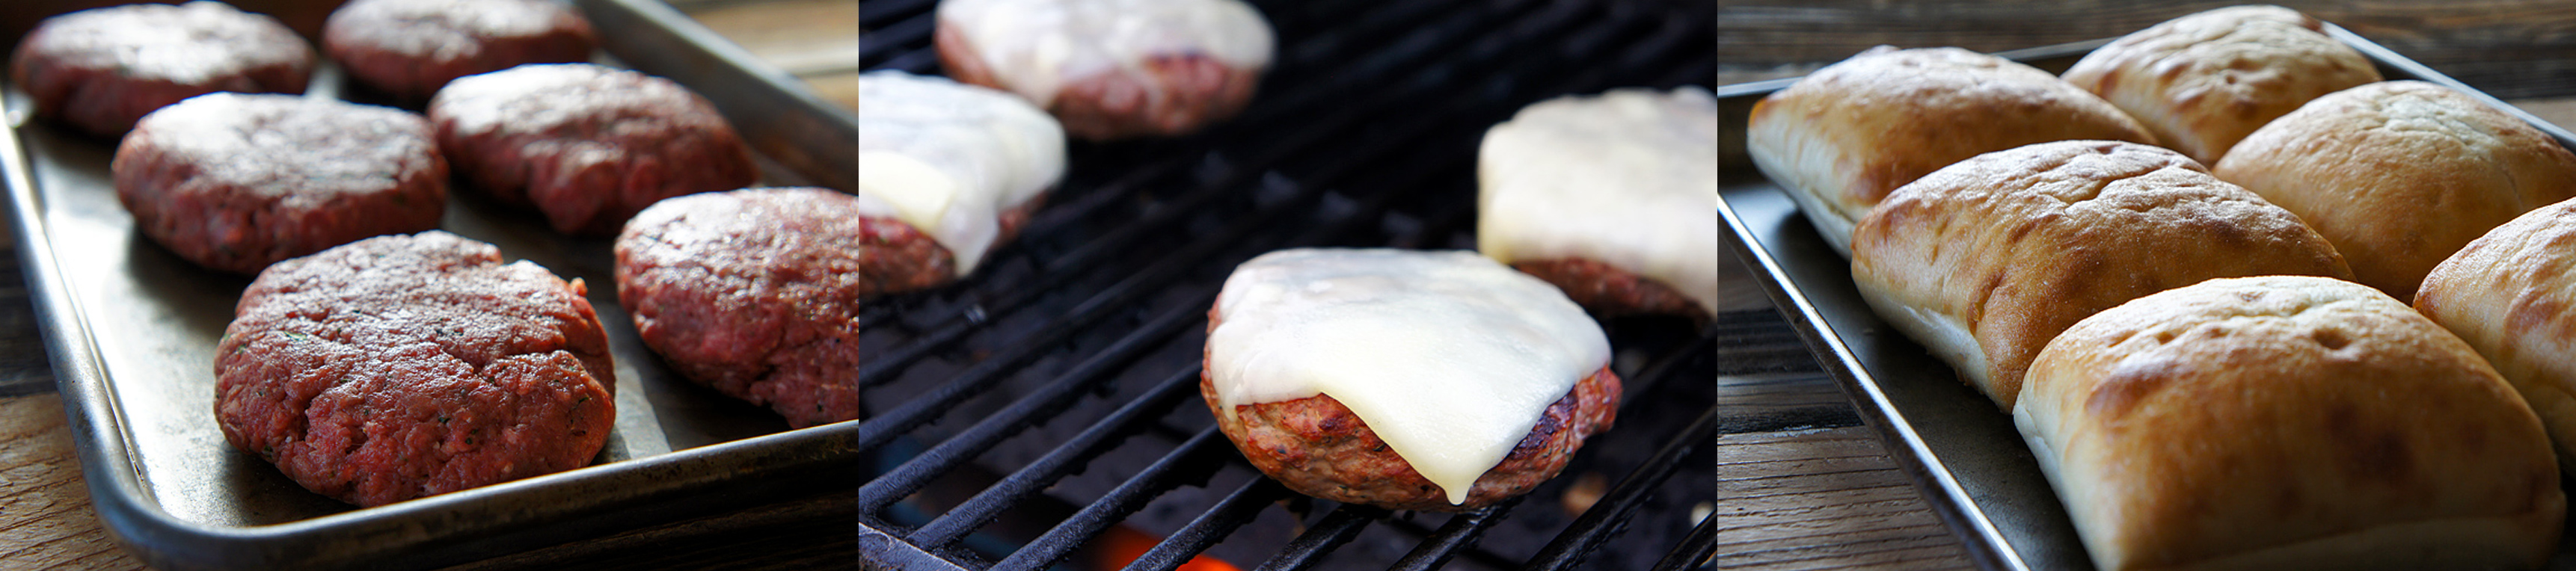 Bourbon Burgers with Caramelized Onions from UnrulyBliss.com